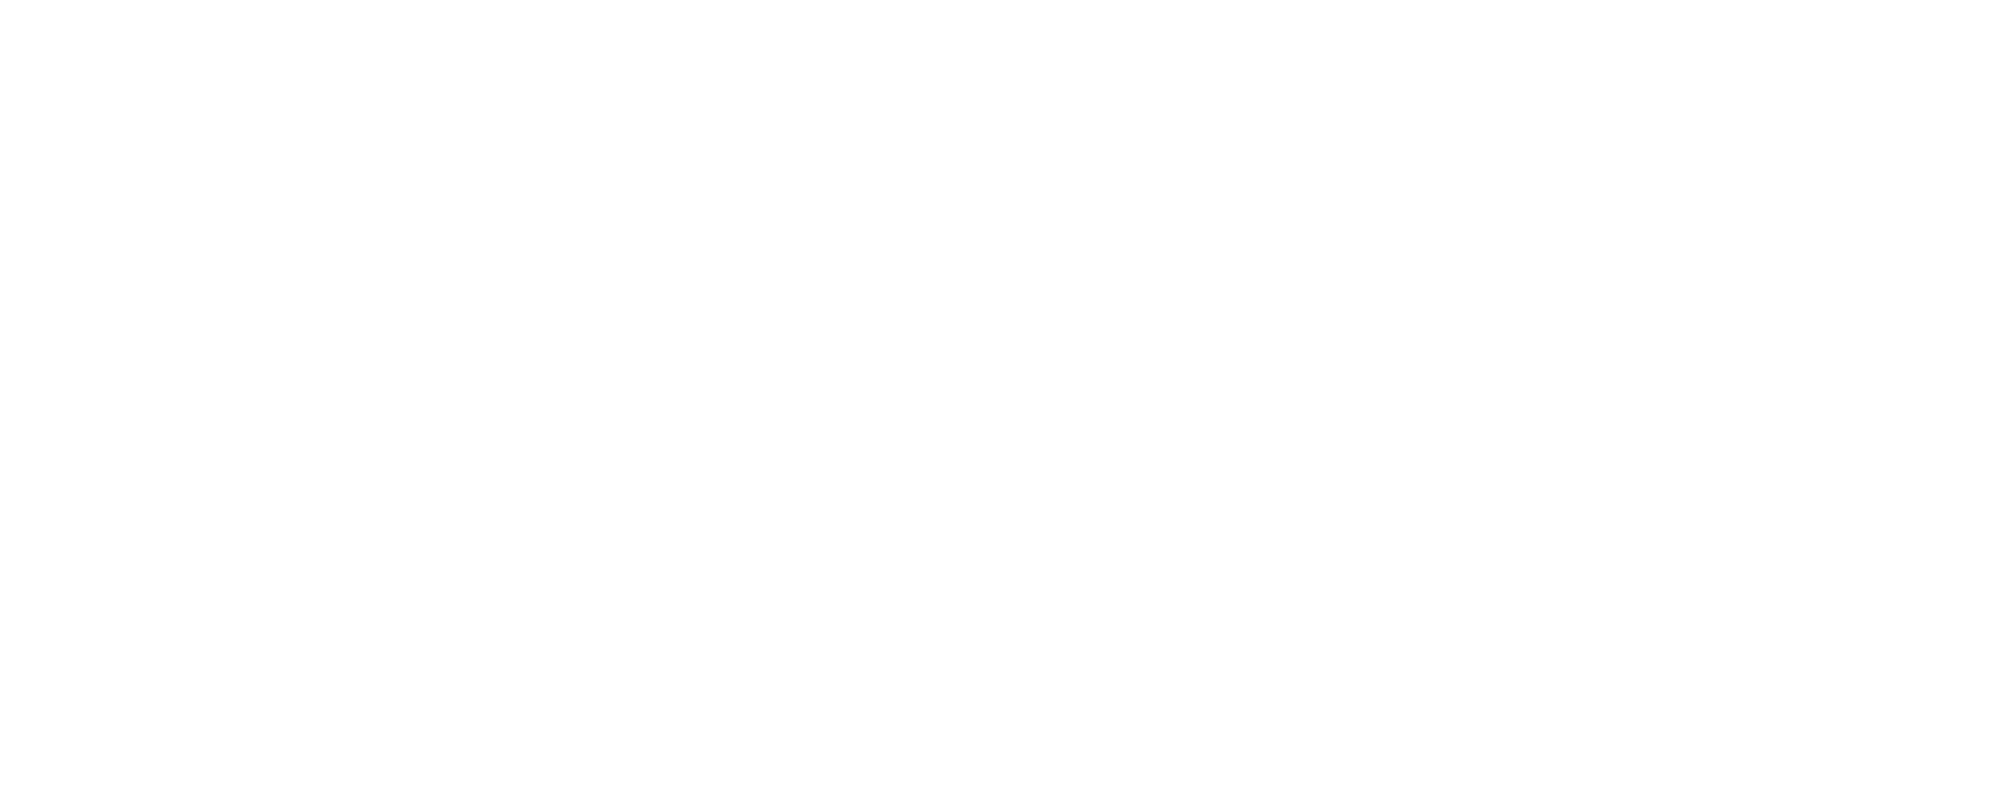 A&S Automobile GmbH